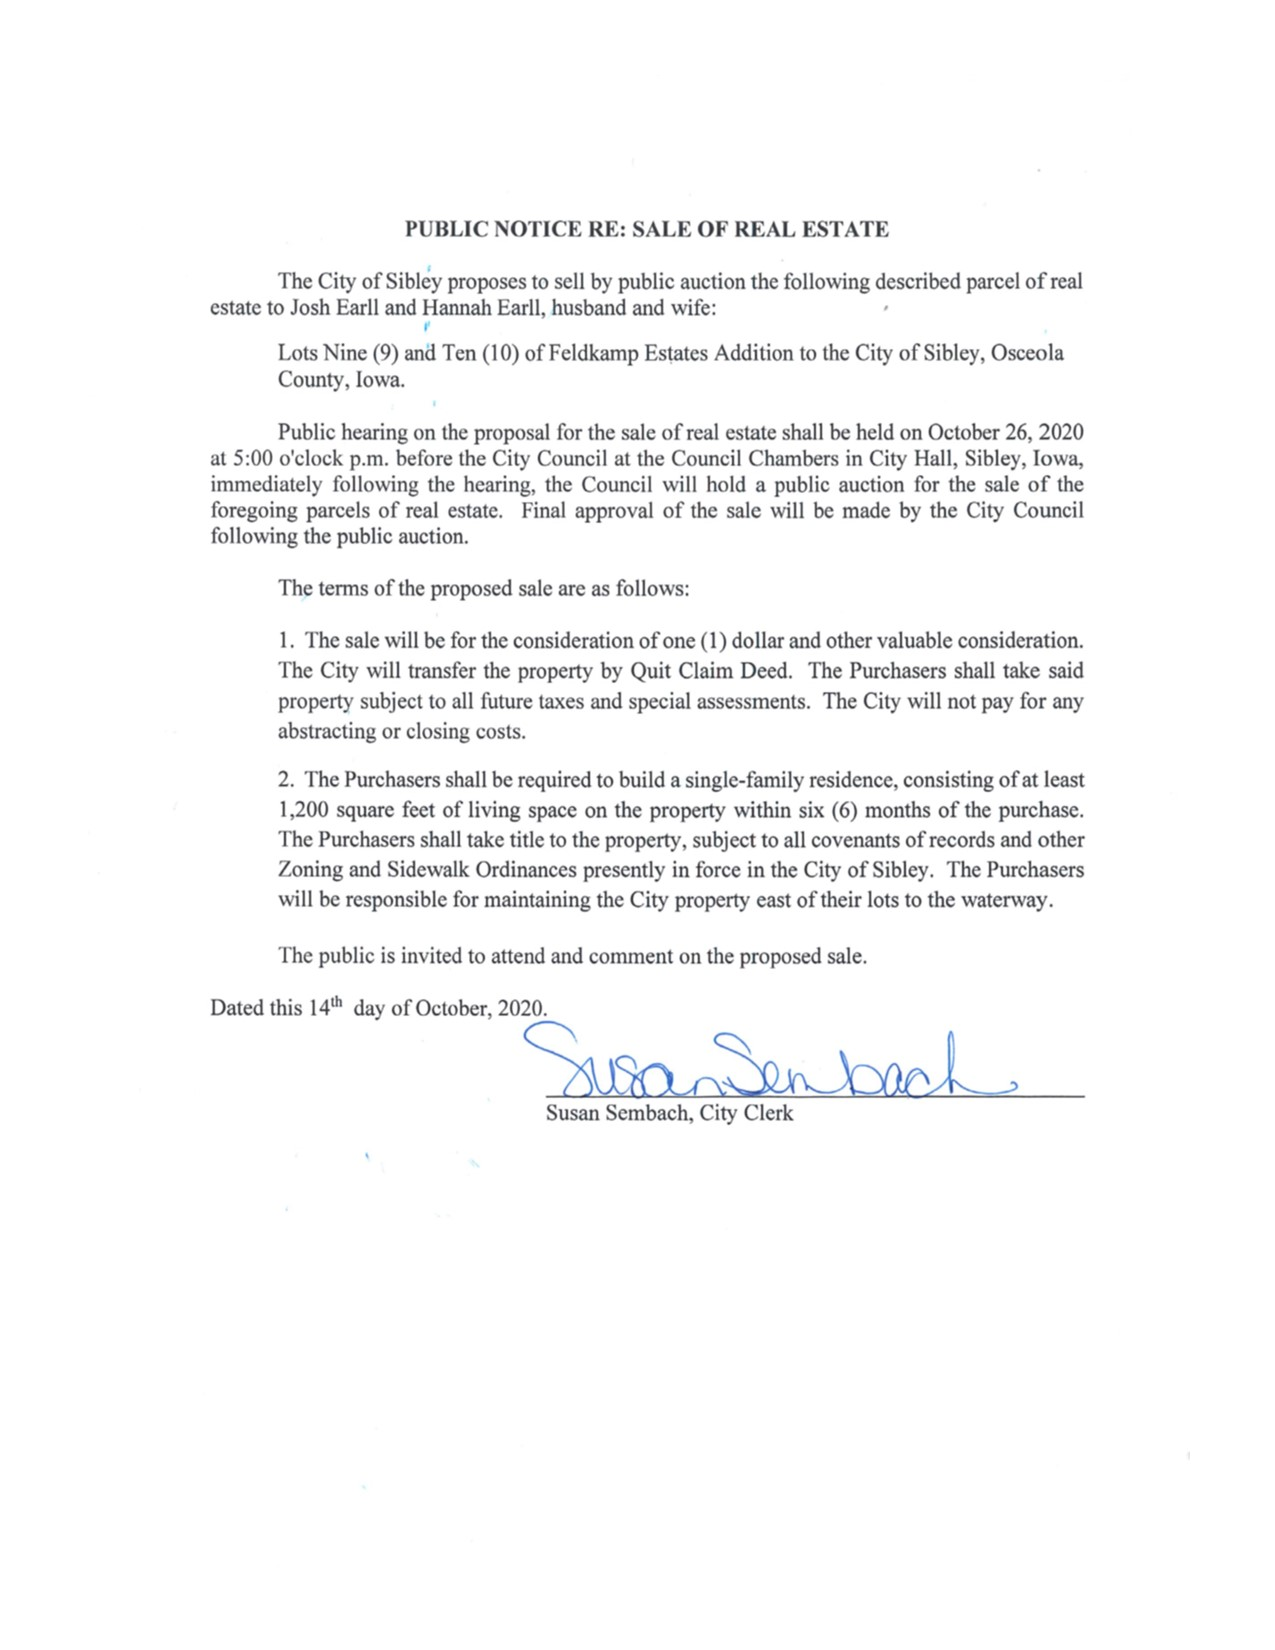 Public Hearing re: Sale of Lots (posted 10.14.2020)